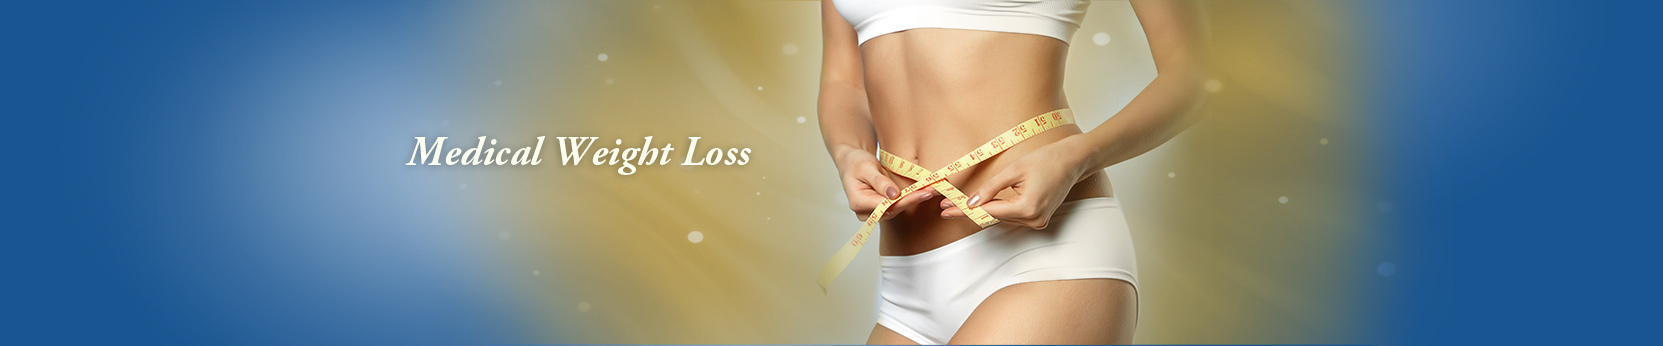 Medical Weight Loss Santa Monica Weight Management Brentwood